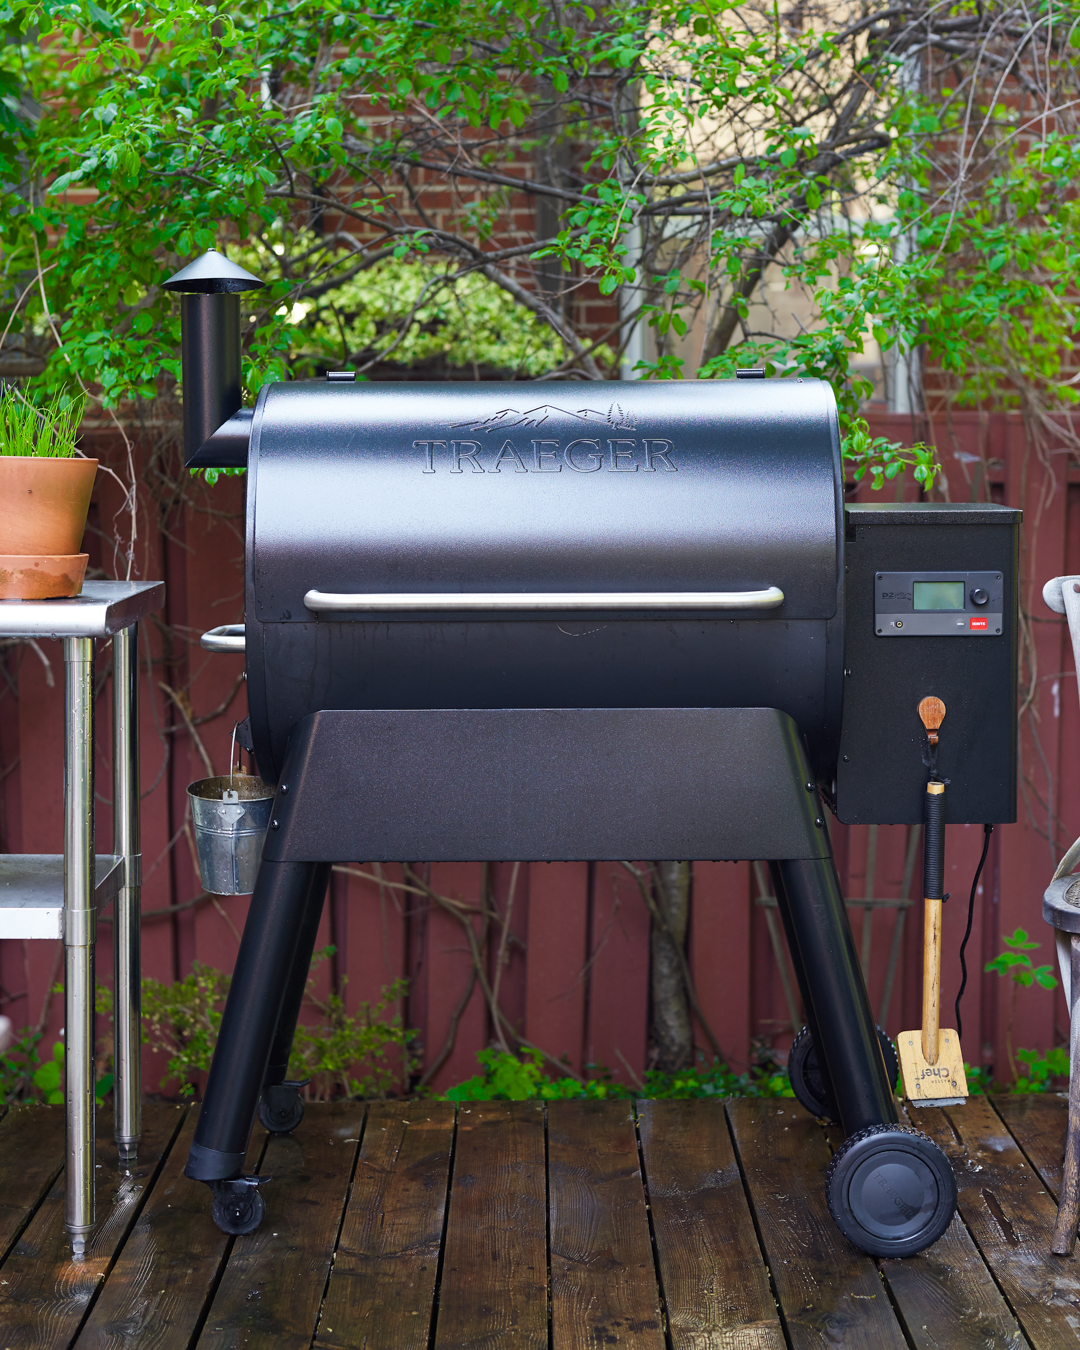 Traeger Black Friday Sale Won't Last Long